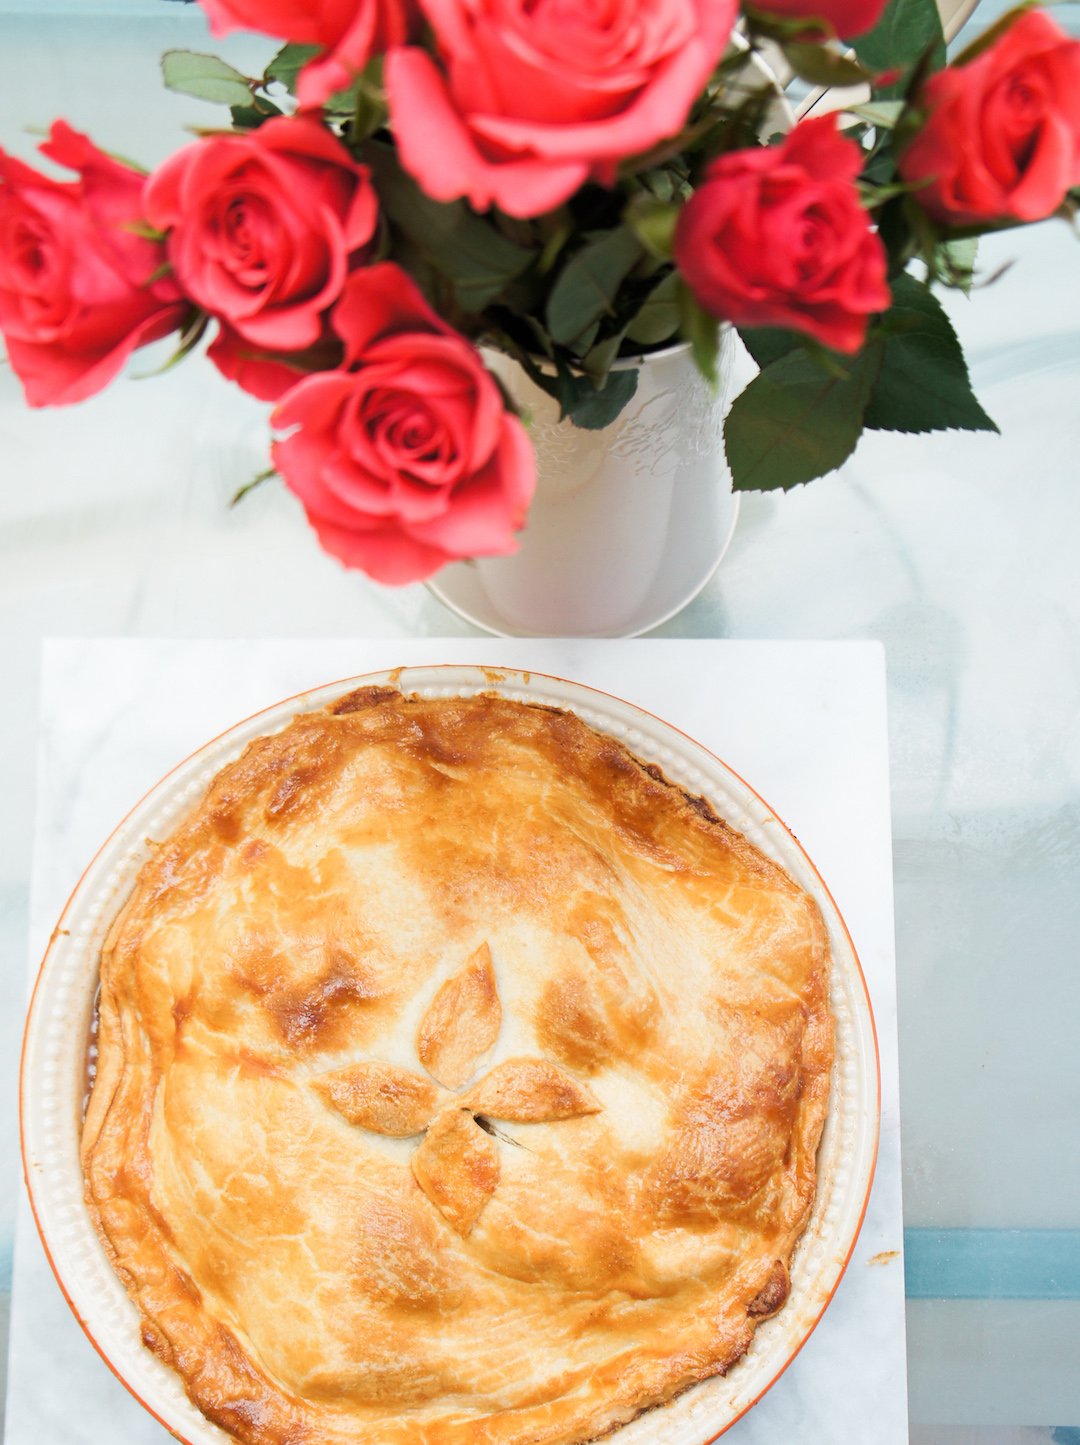 Gran's Apple Pie